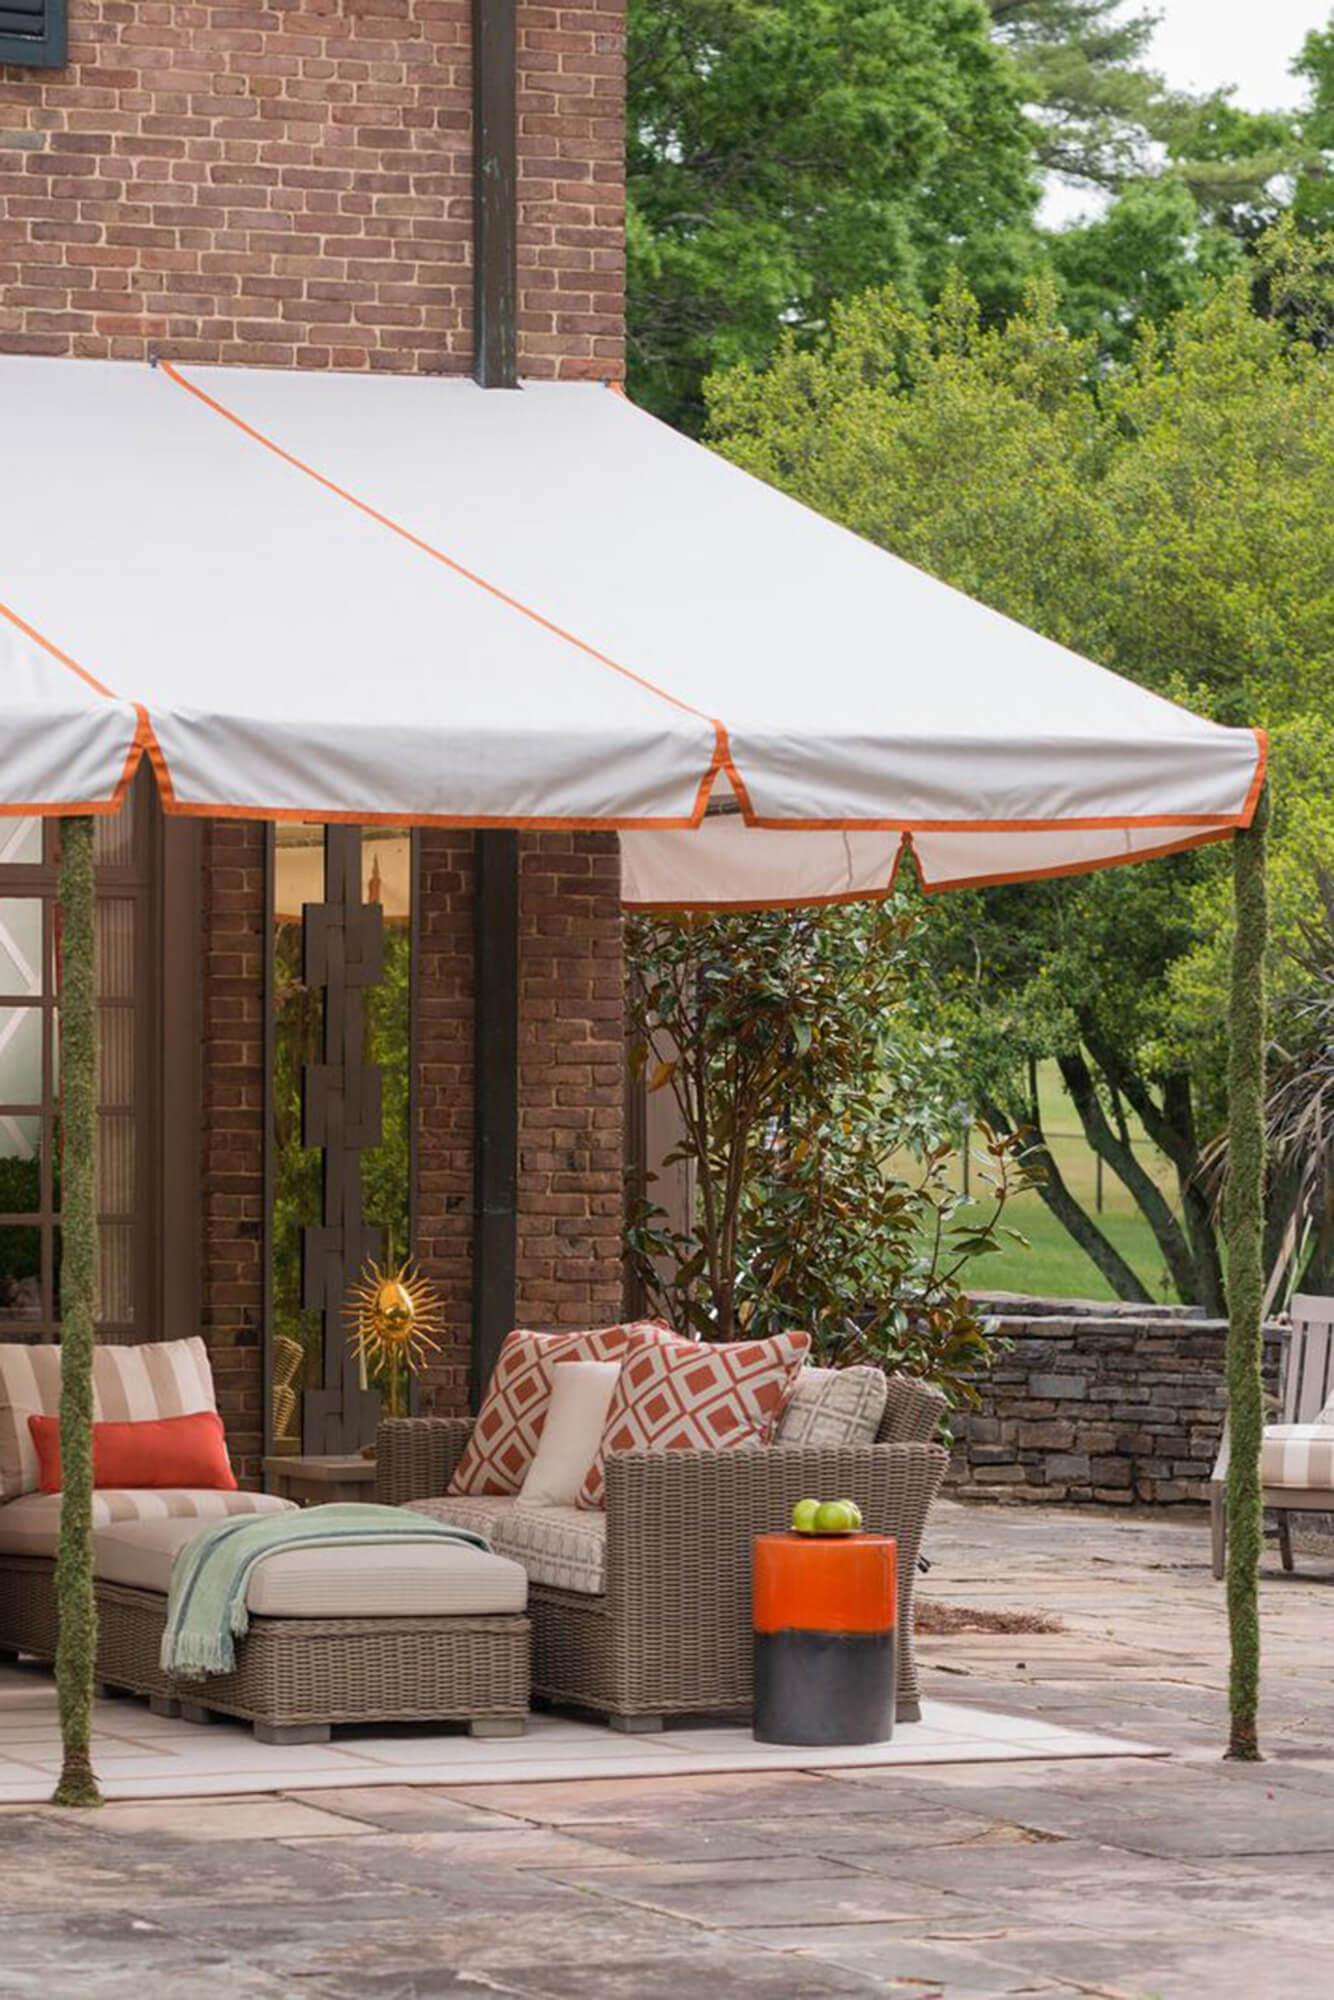 Patio covered with a fixed frame awning with white Sunbrella fabric and orange detailing